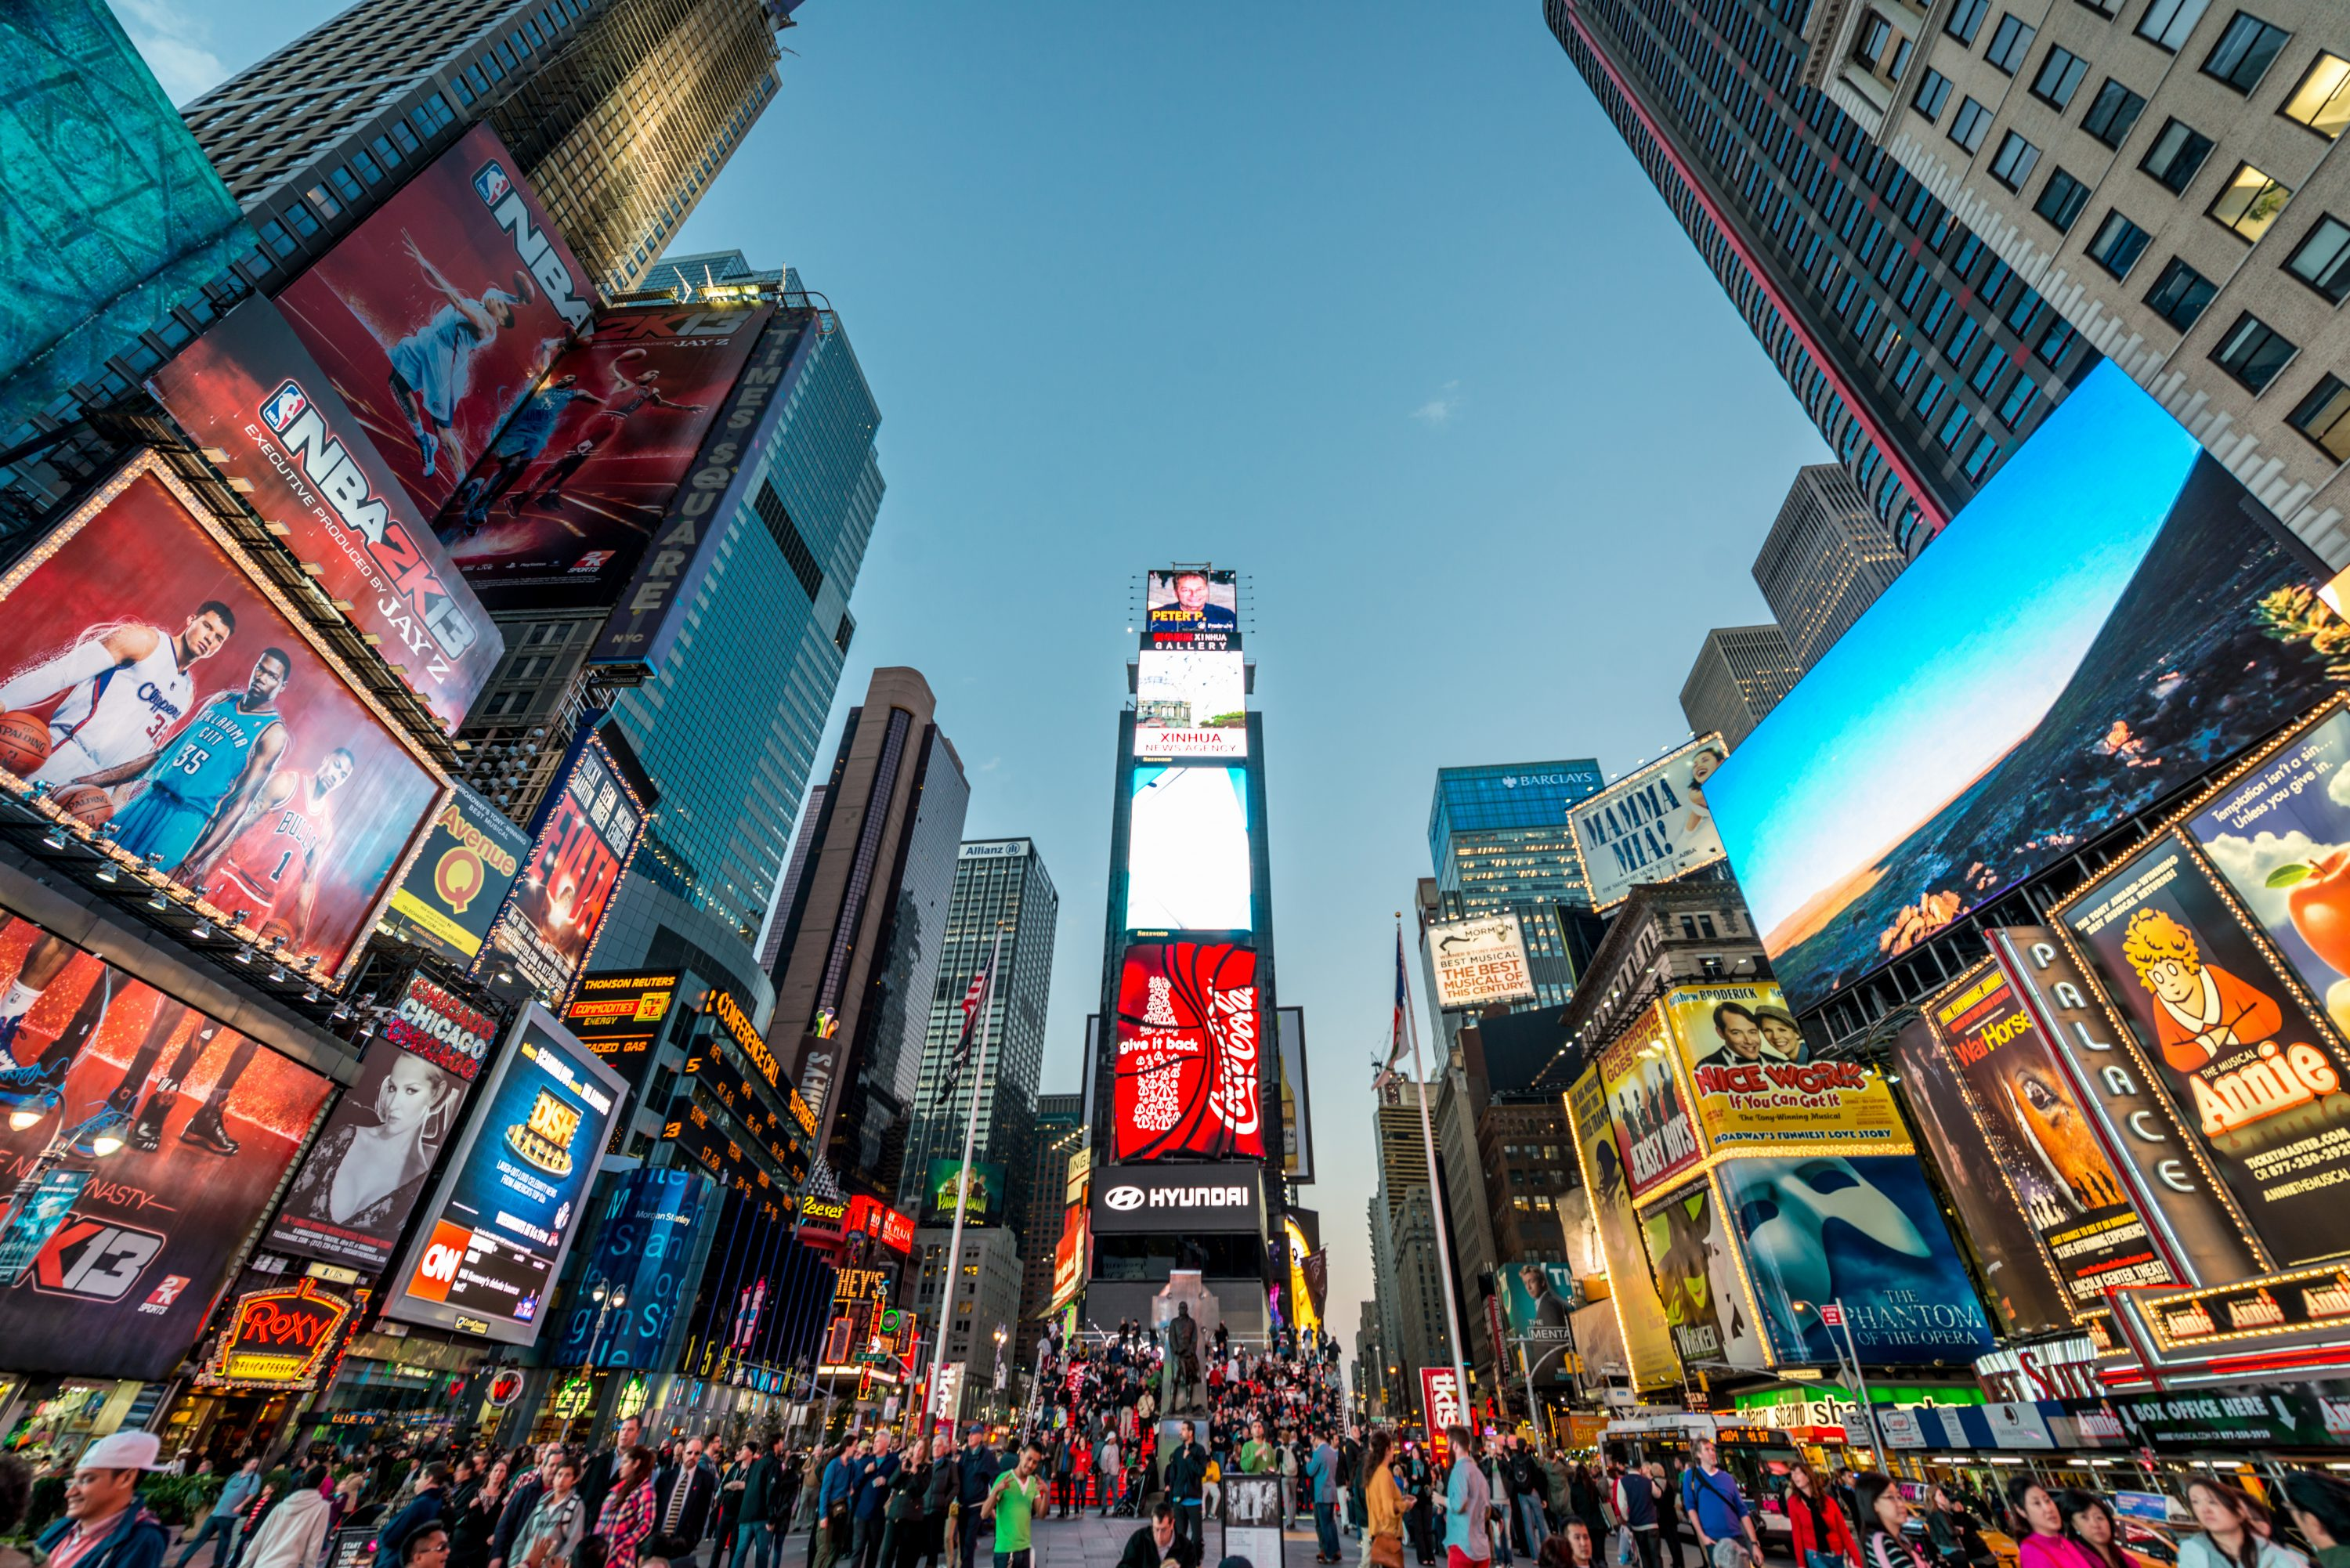 Lights in New York City's Times Square. (iStock Photo)